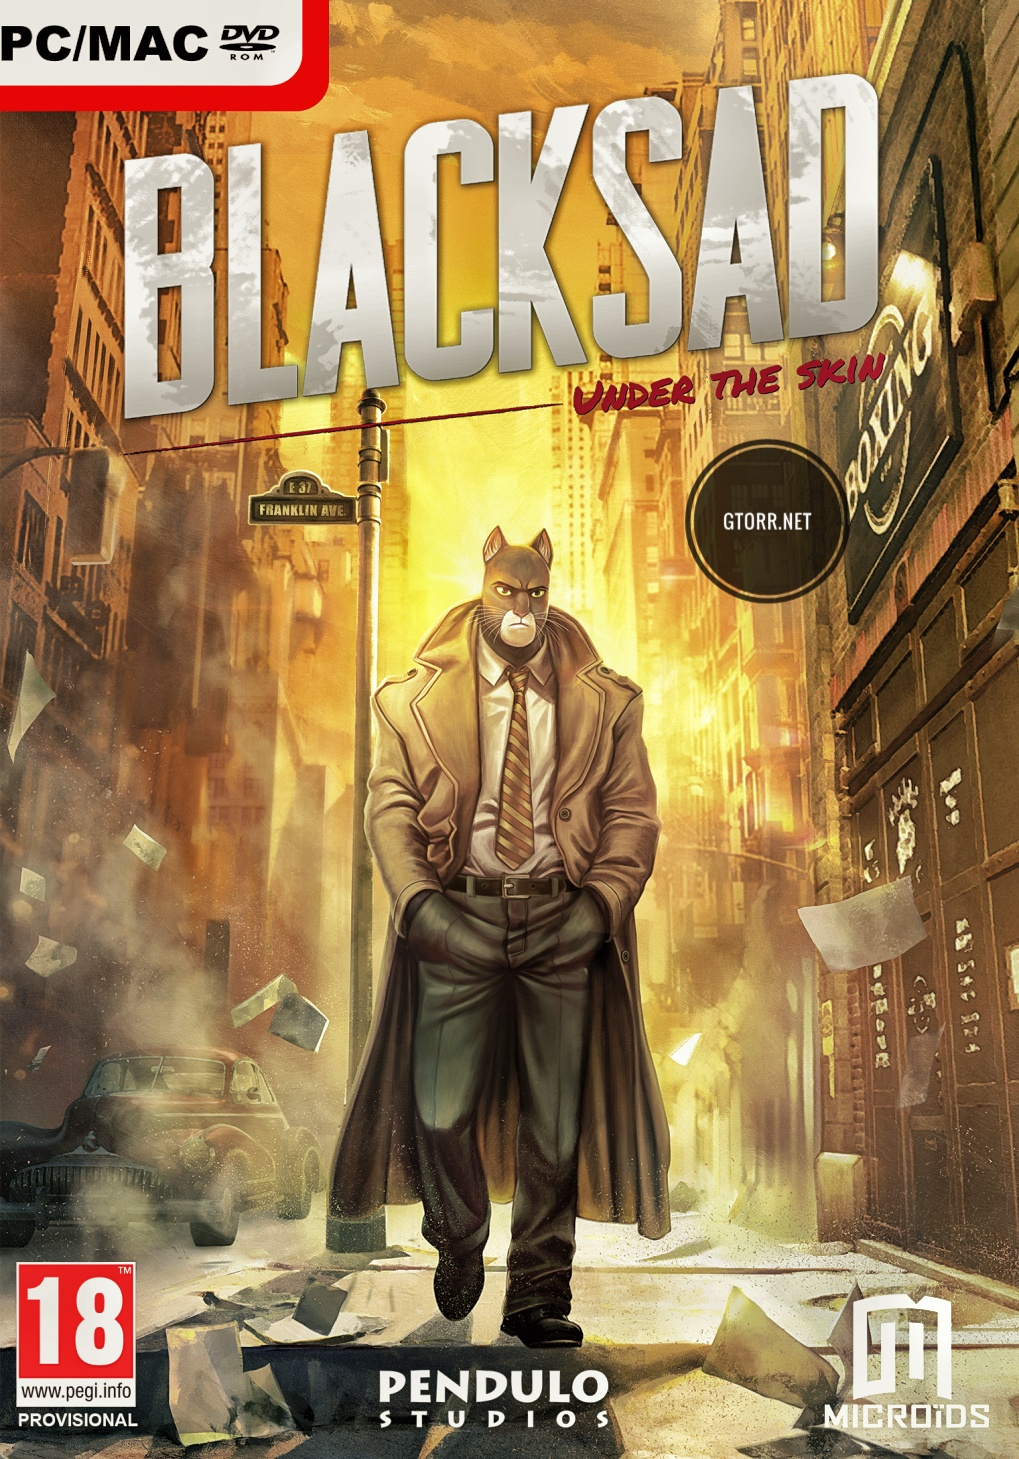 Blacksad: Under the Skin |  Razor 1911